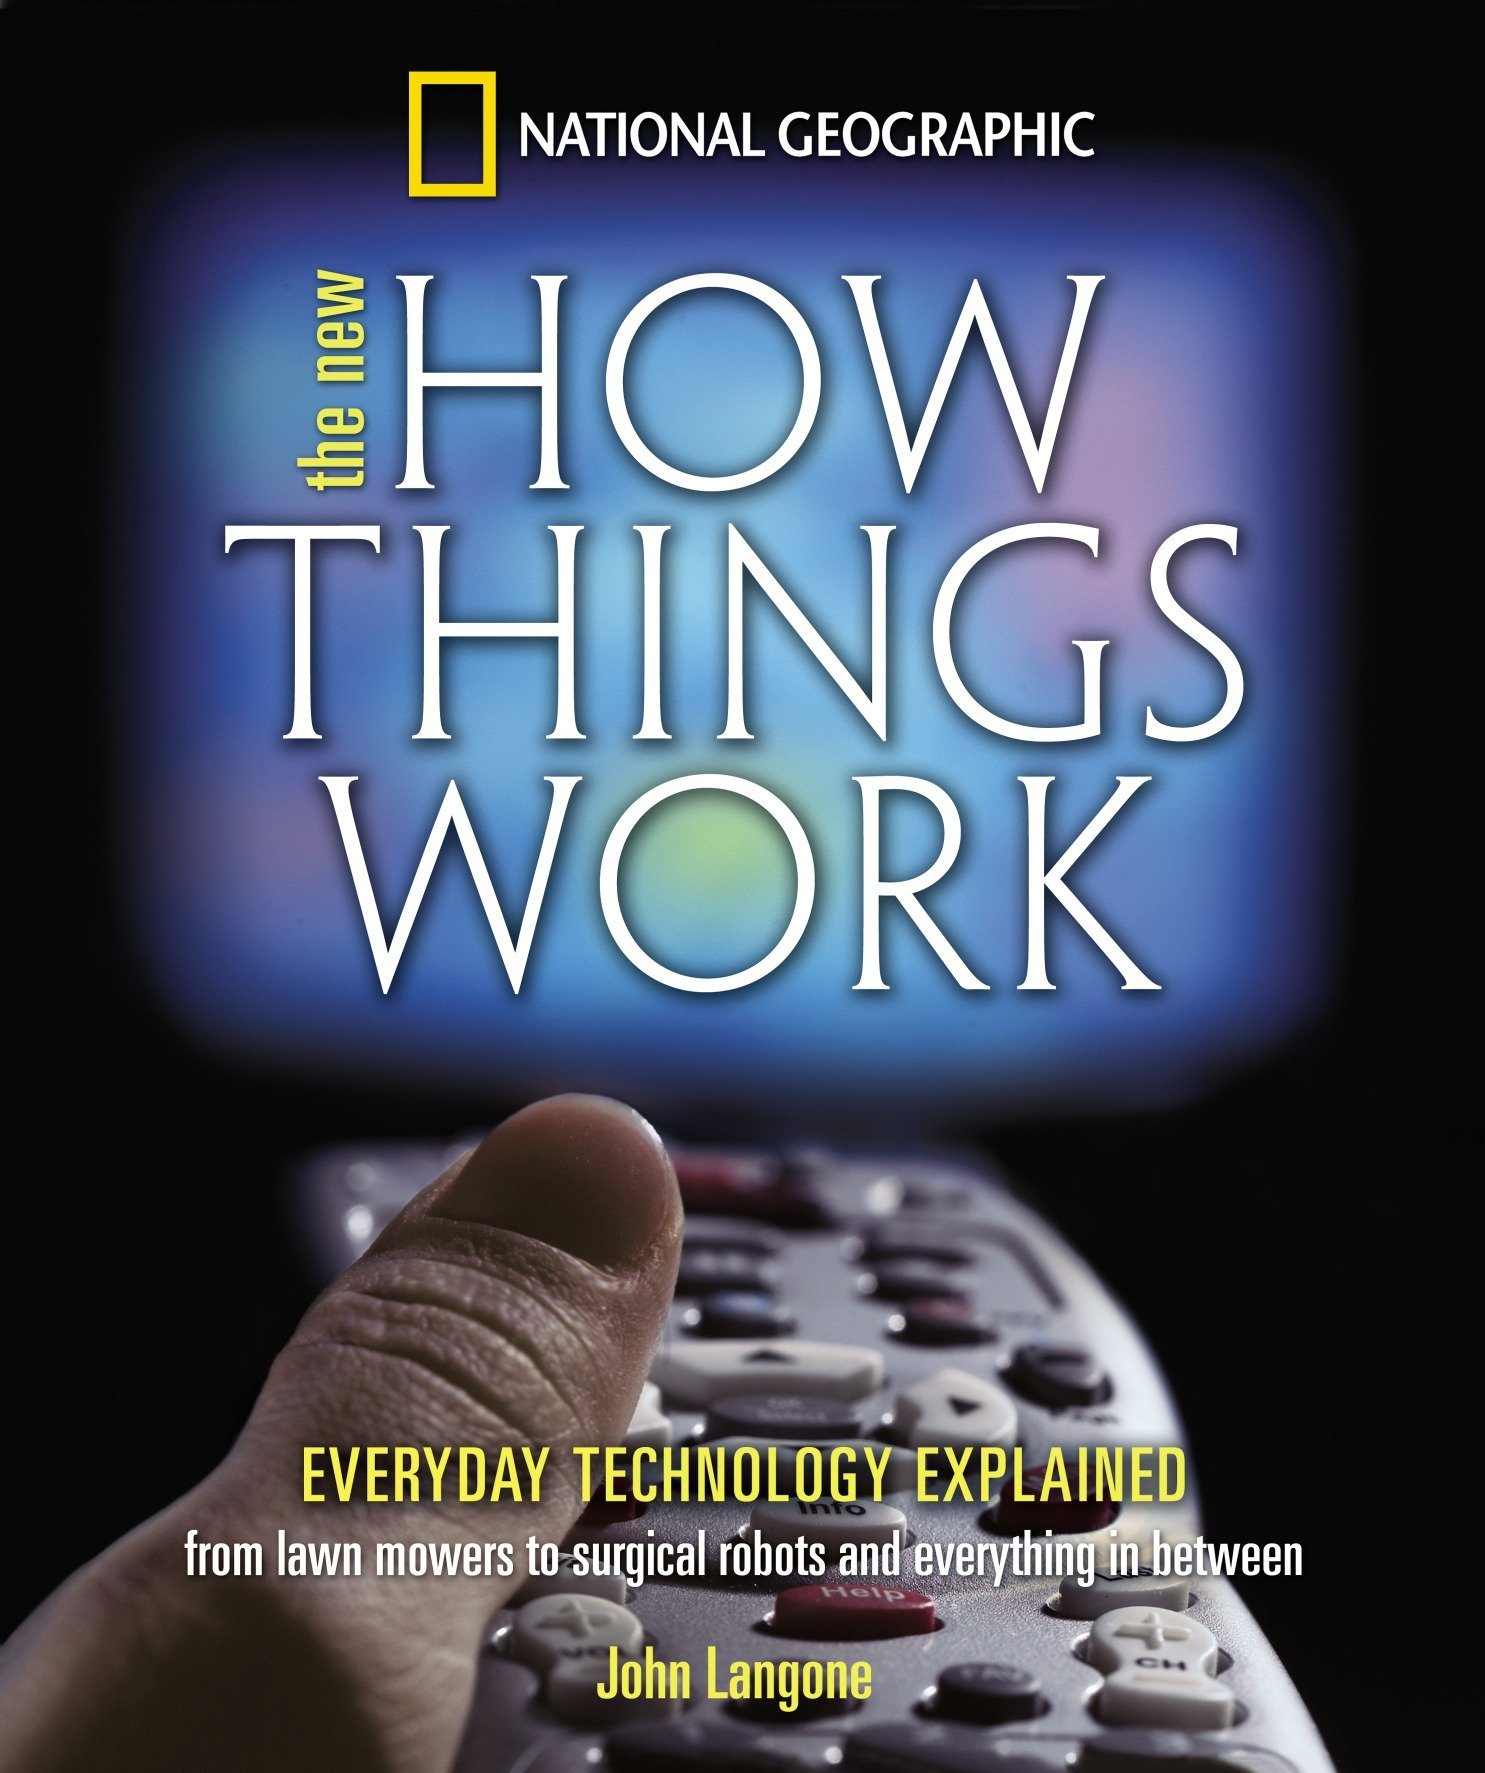 New How Things Work: From Lawn Mowers to Surgical Robots and Everthing in Between by Brand: National Geographic